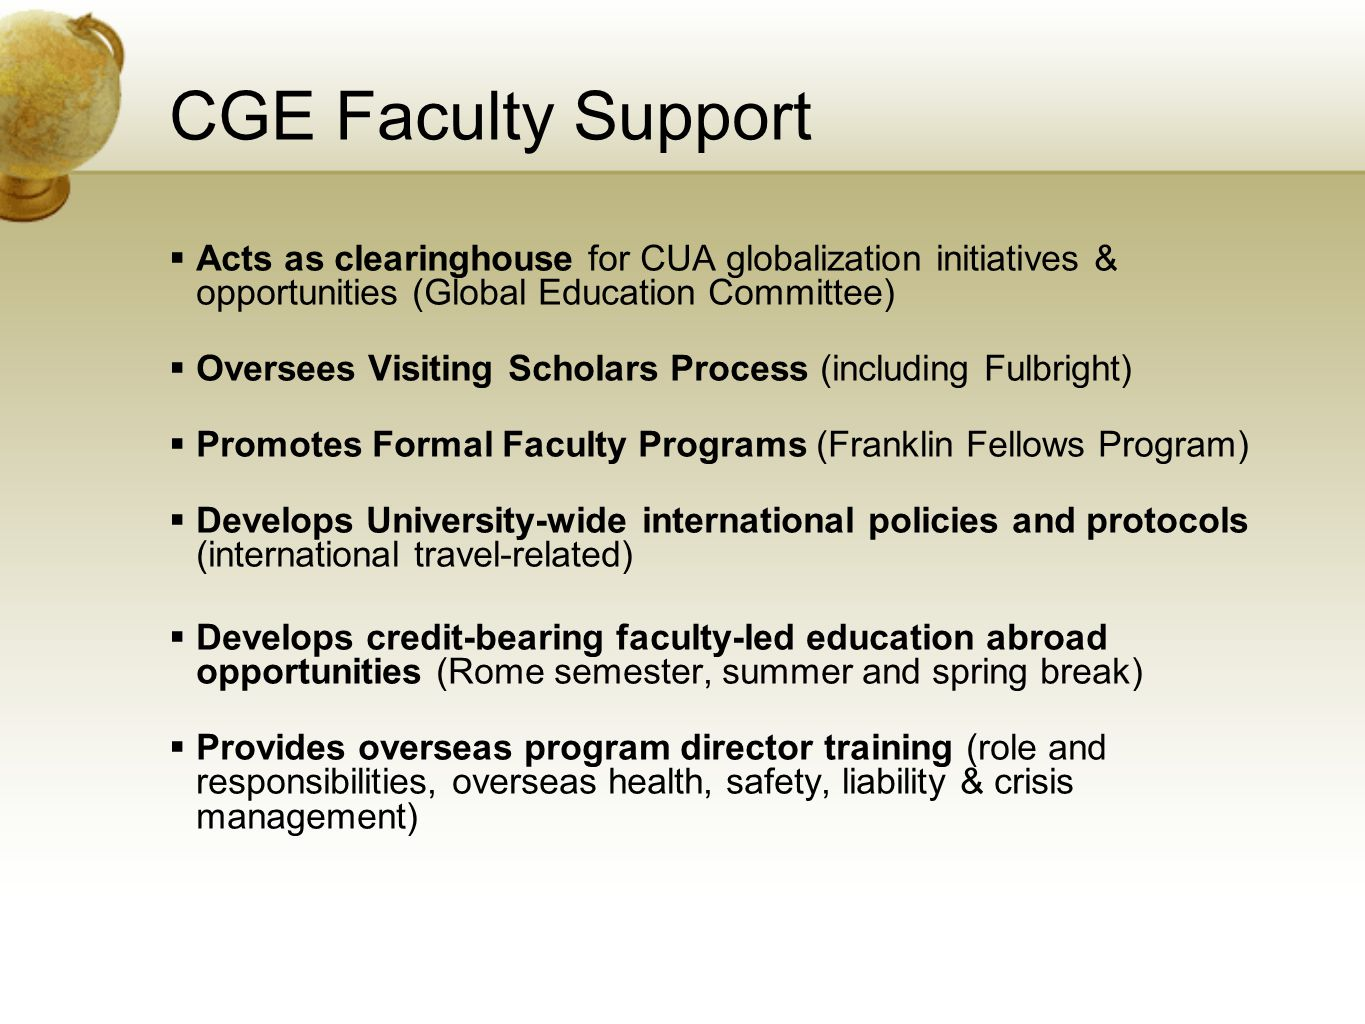 CGE Faculty Support  Acts as clearinghouse for CUA globalization initiatives & opportunities (Global Education Committee)  Oversees Visiting Scholars Process (including Fulbright)  Promotes Formal Faculty Programs (Franklin Fellows Program)  Develops University-wide international policies and protocols (international travel-related)  Develops credit-bearing faculty-led education abroad opportunities (Rome semester, summer and spring break)  Provides overseas program director training (role and responsibilities, overseas health, safety, liability & crisis management)